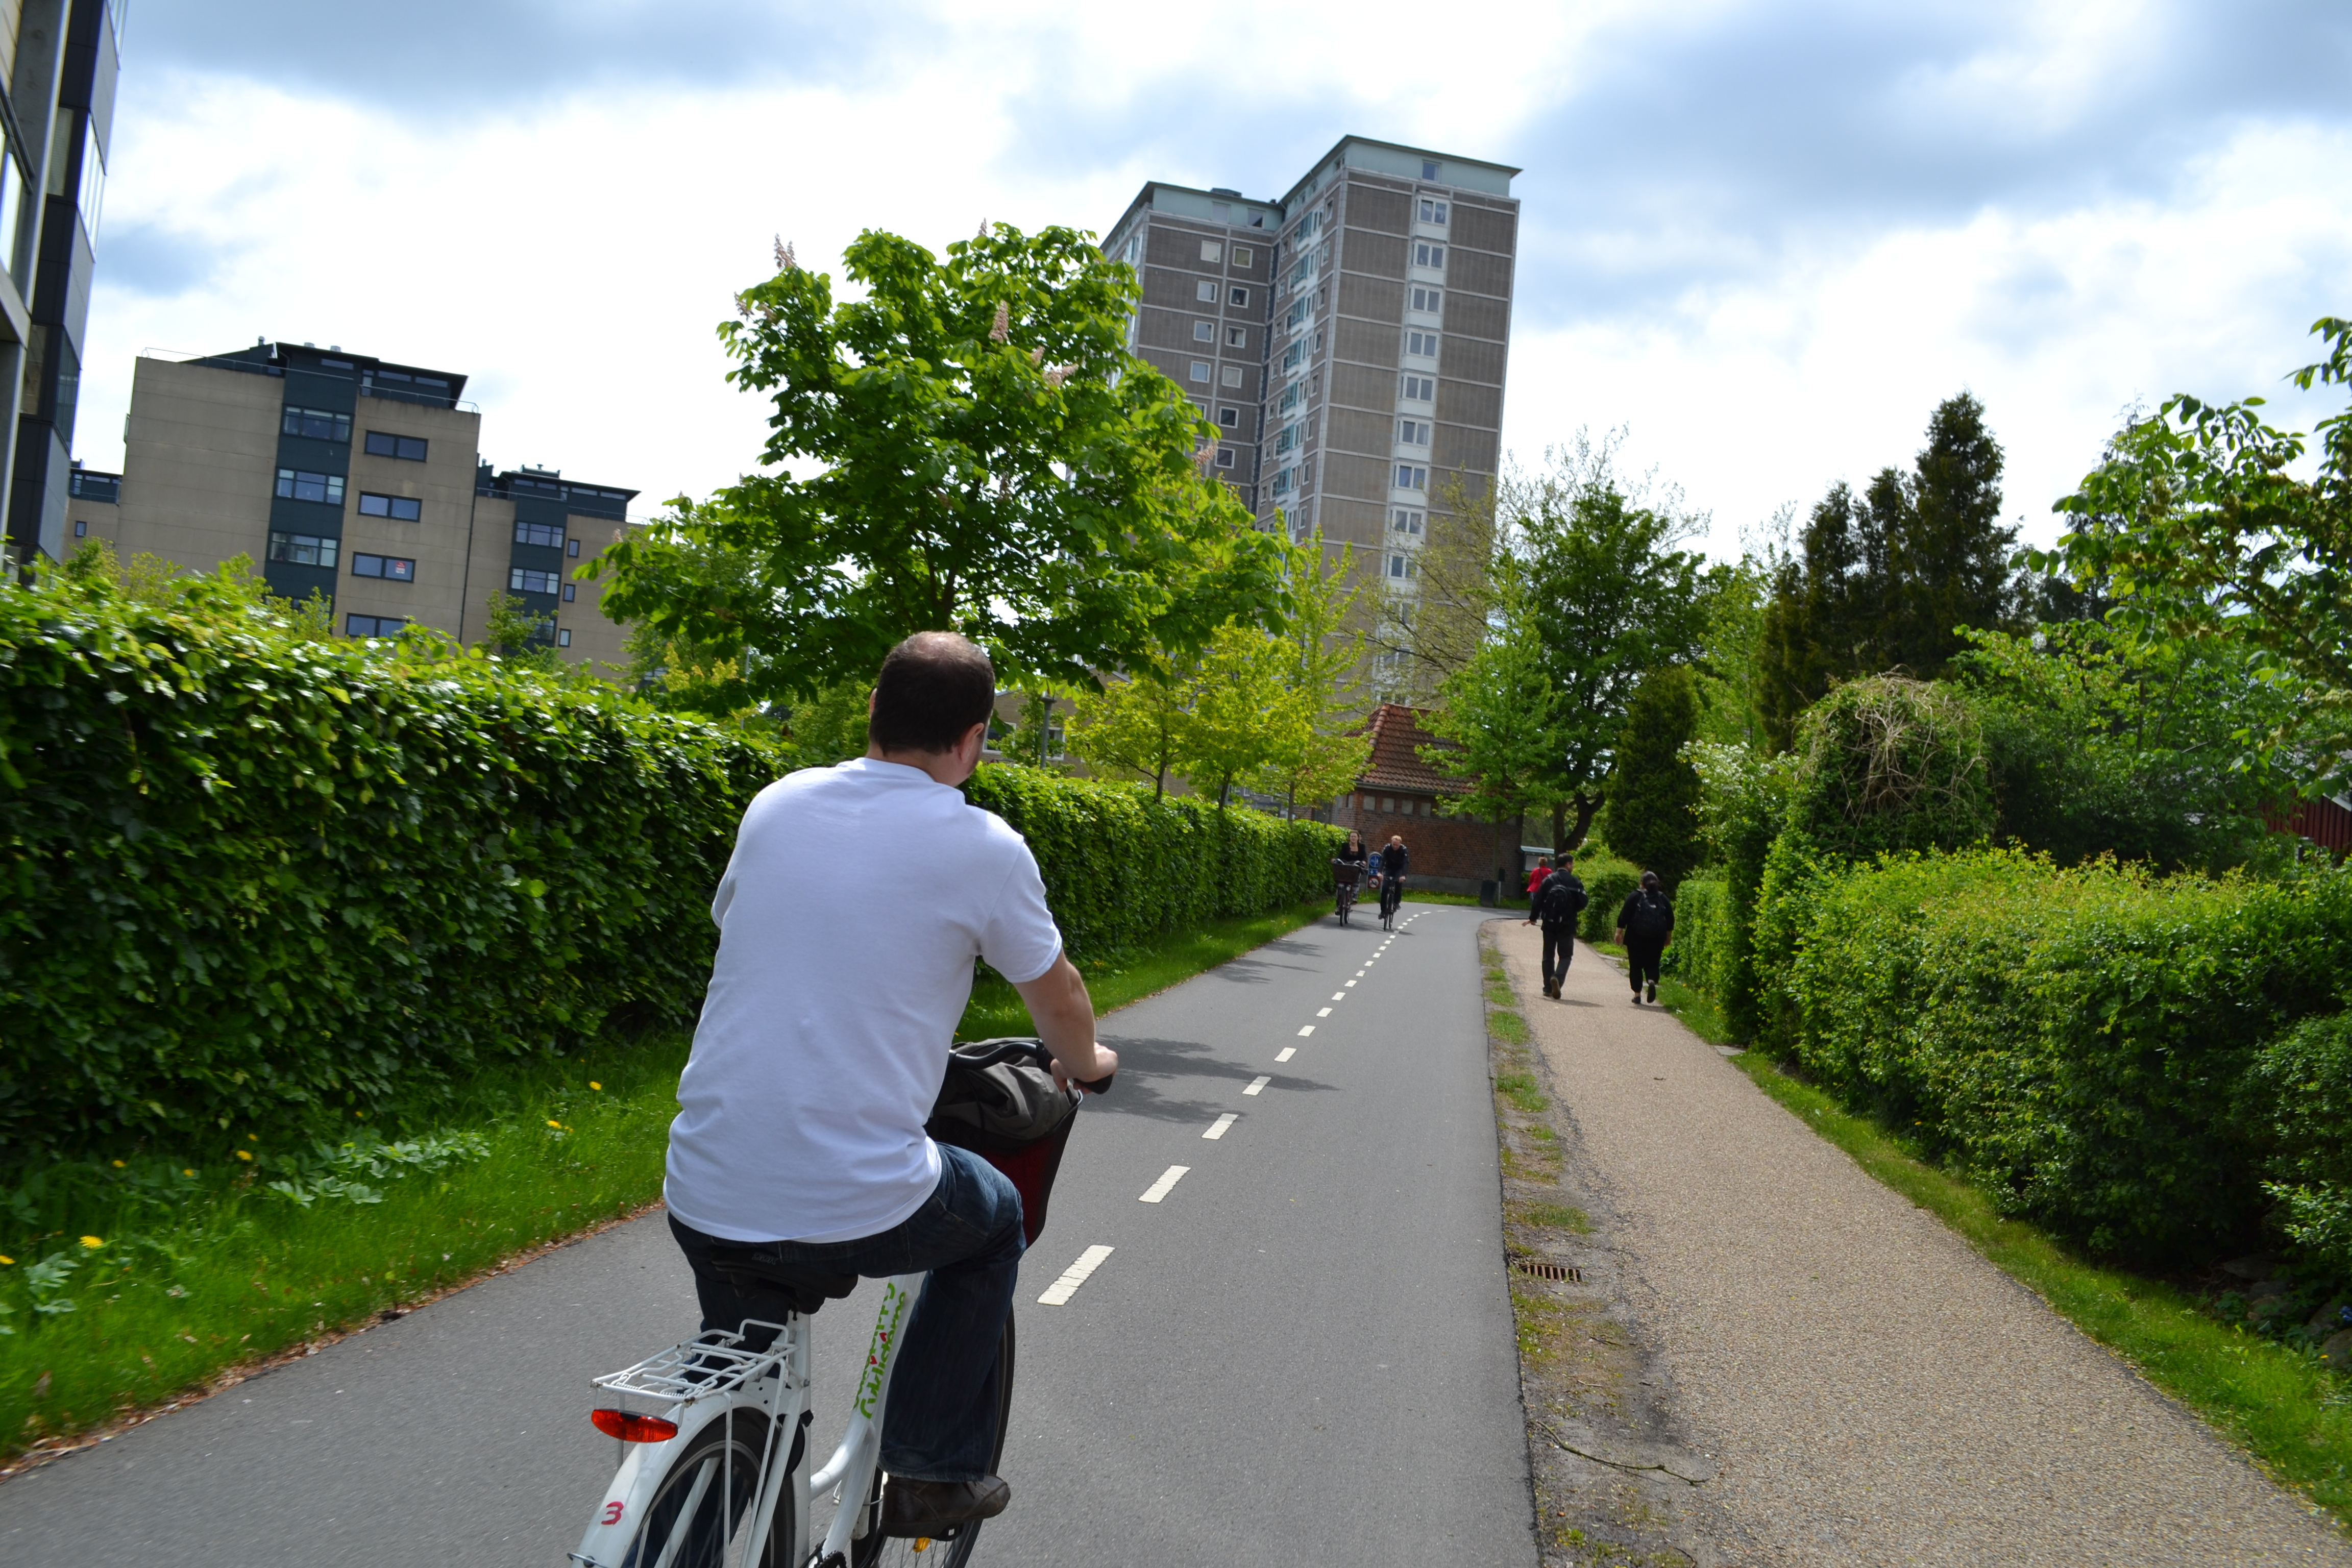 Bicycle paths through green corridors / greenways